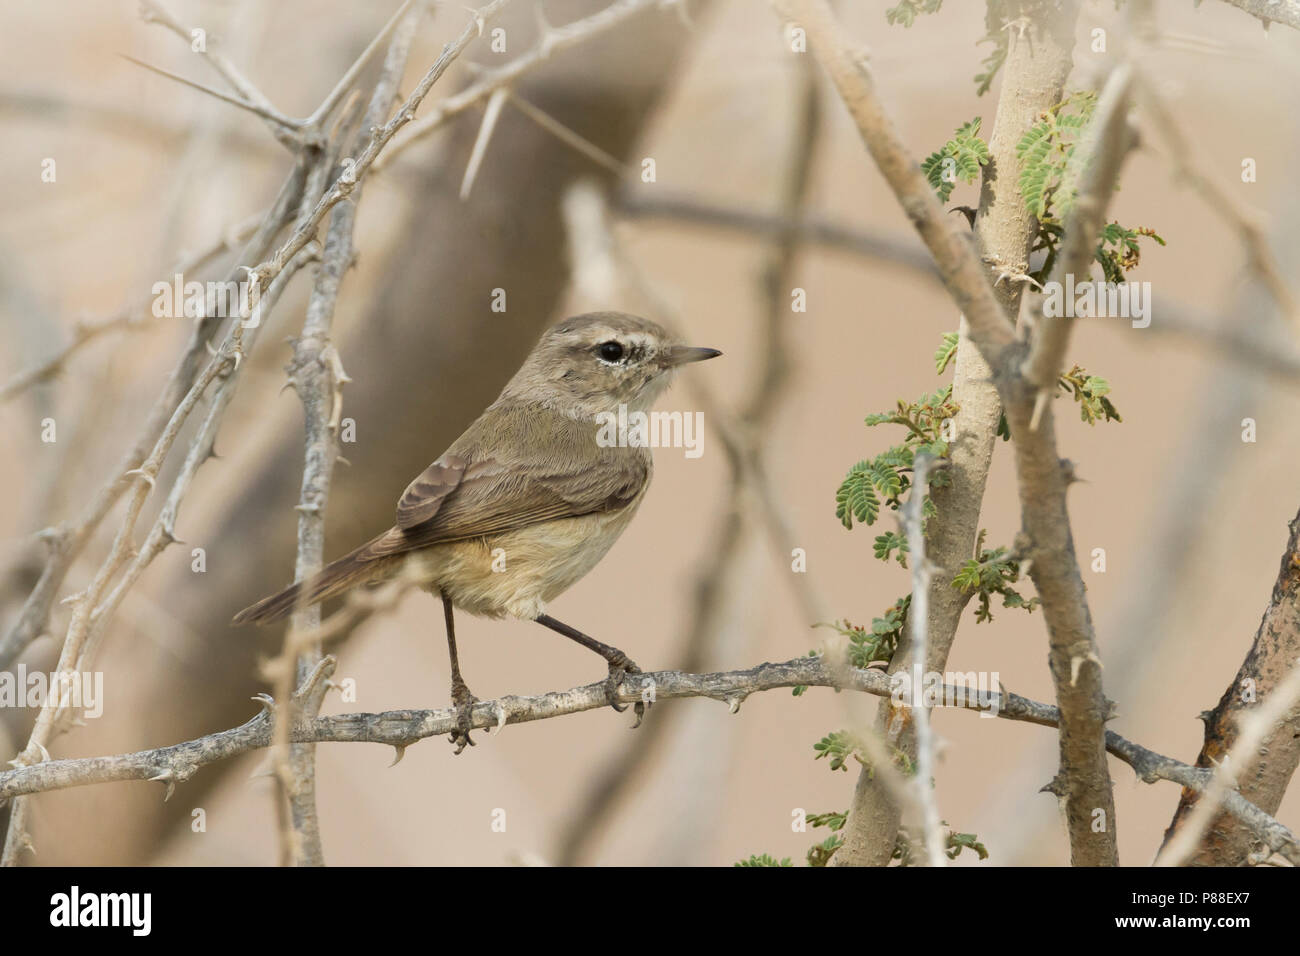 Plain-leaf Warbler - Eichenlaubsänger - Phylloscopus neglectus, Oman, adult Stock Photo